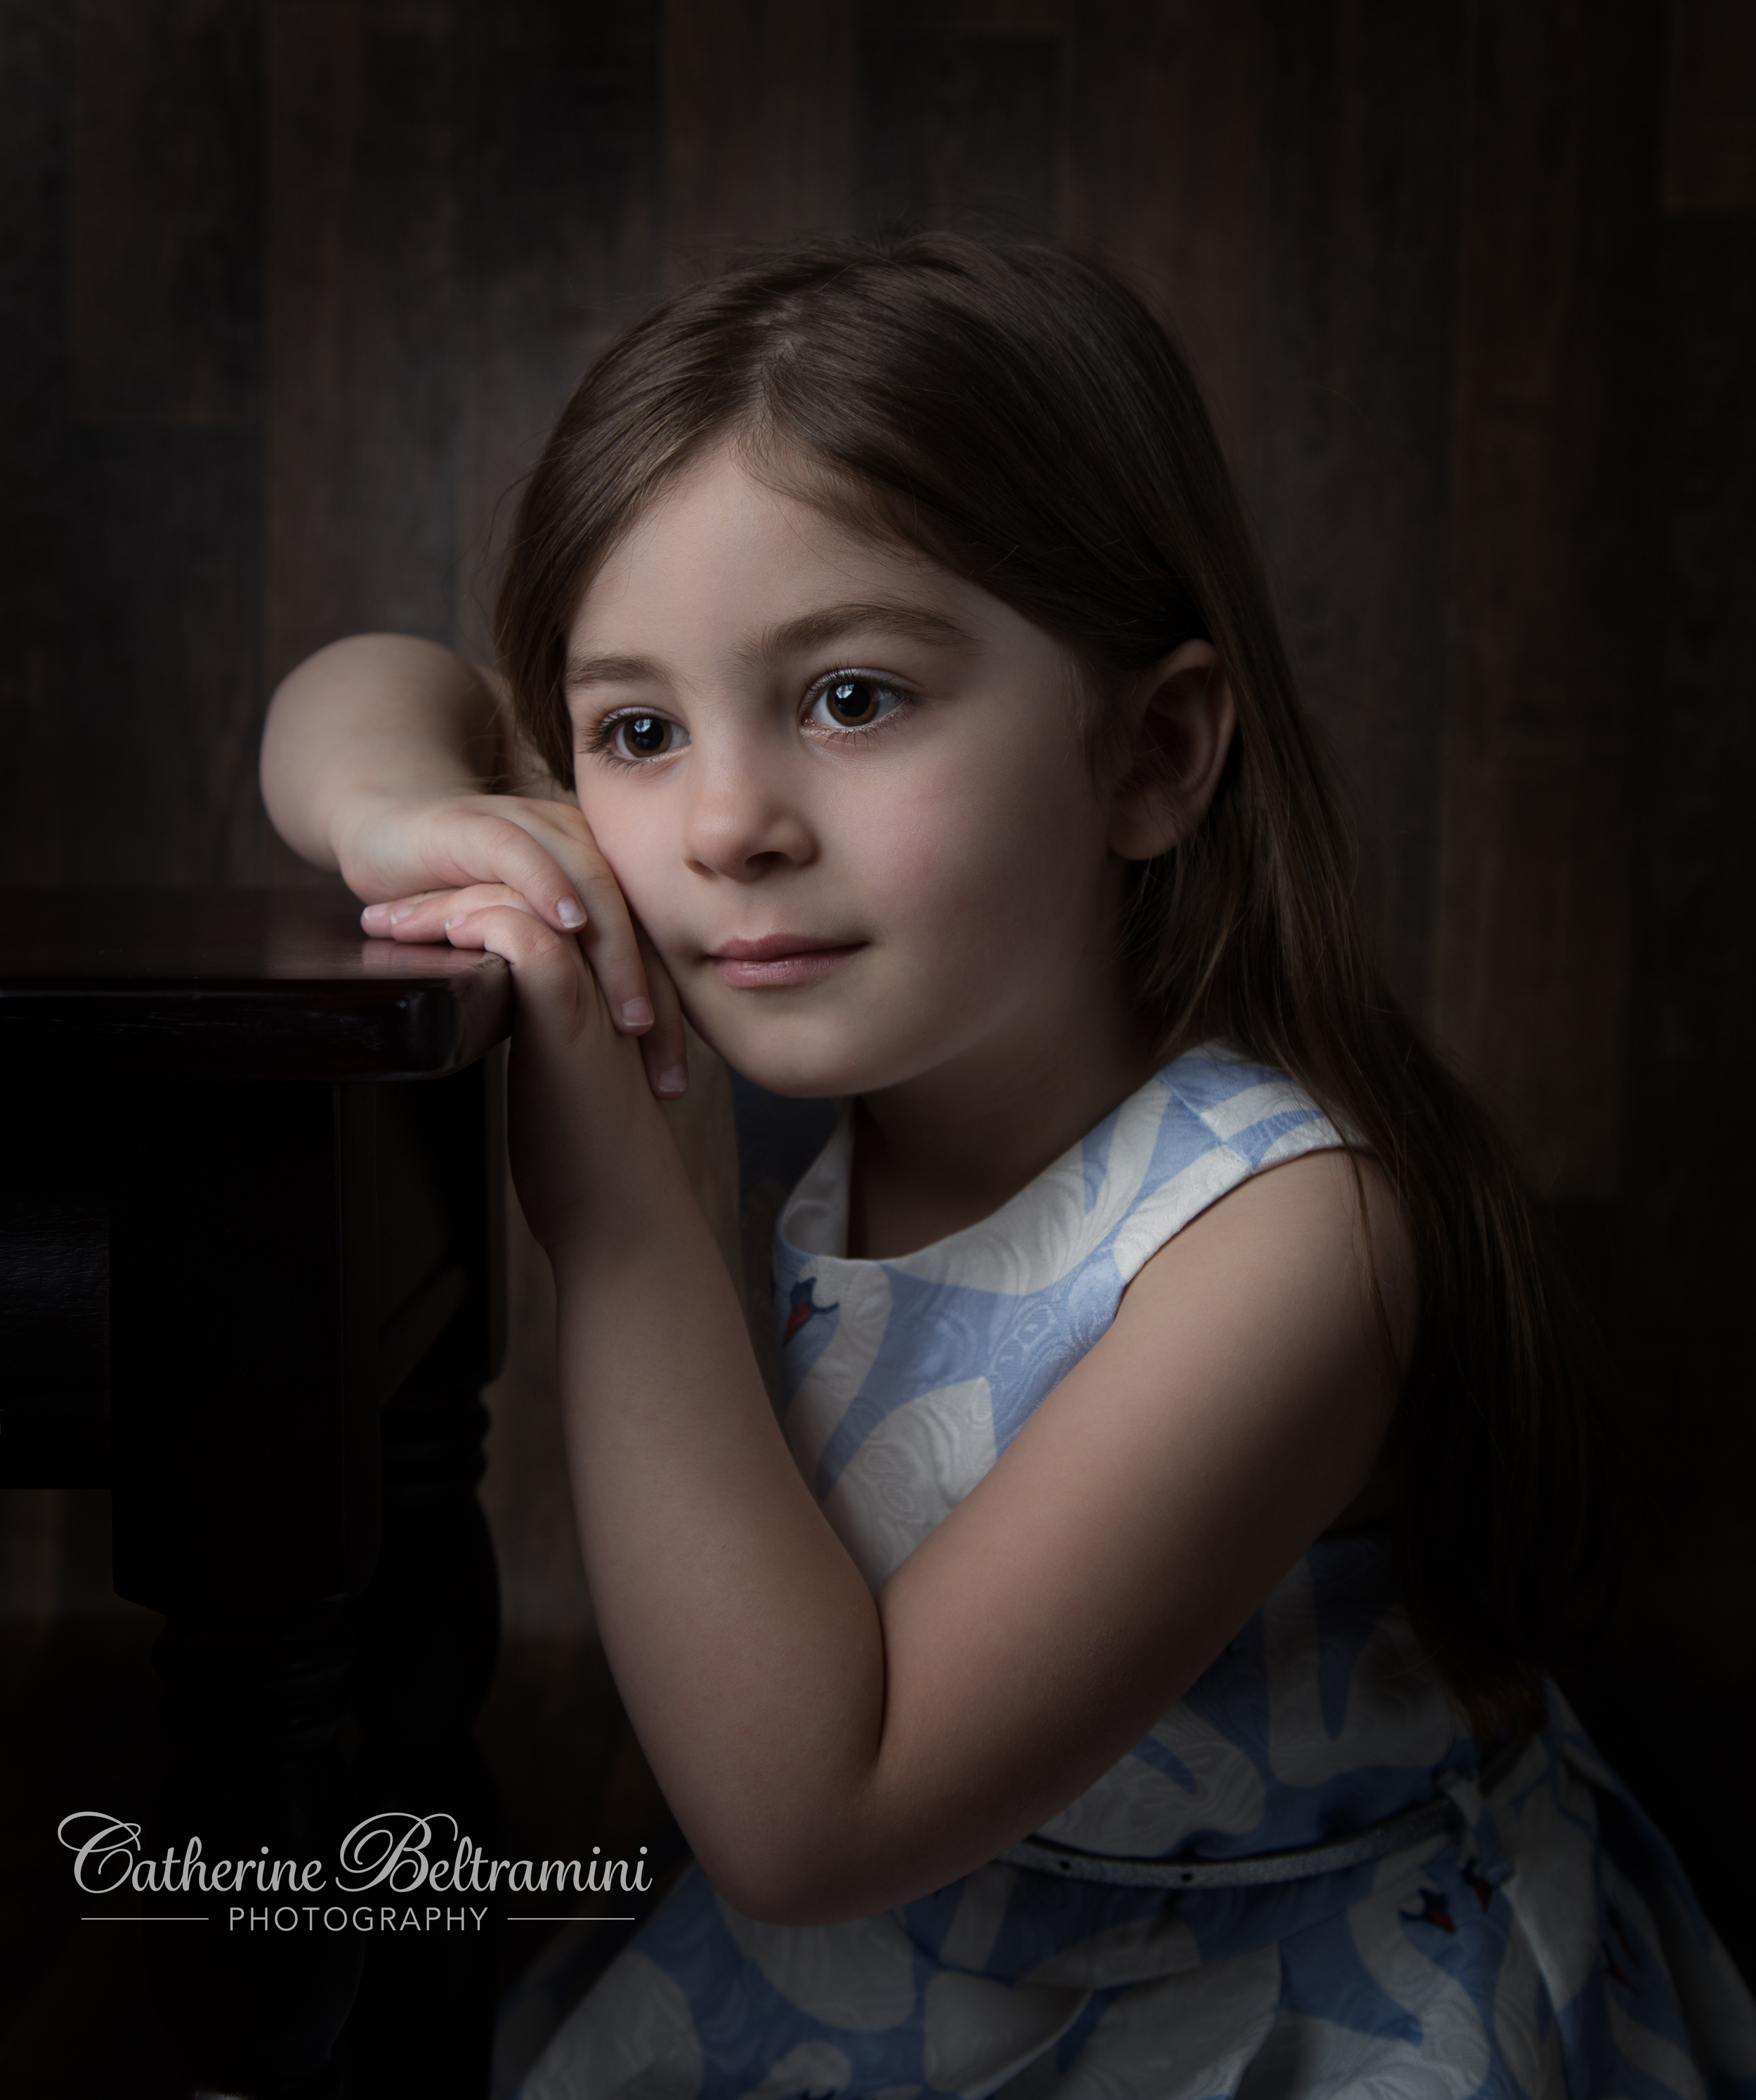 I really enjoyed photographing this young girl. She was a natural!